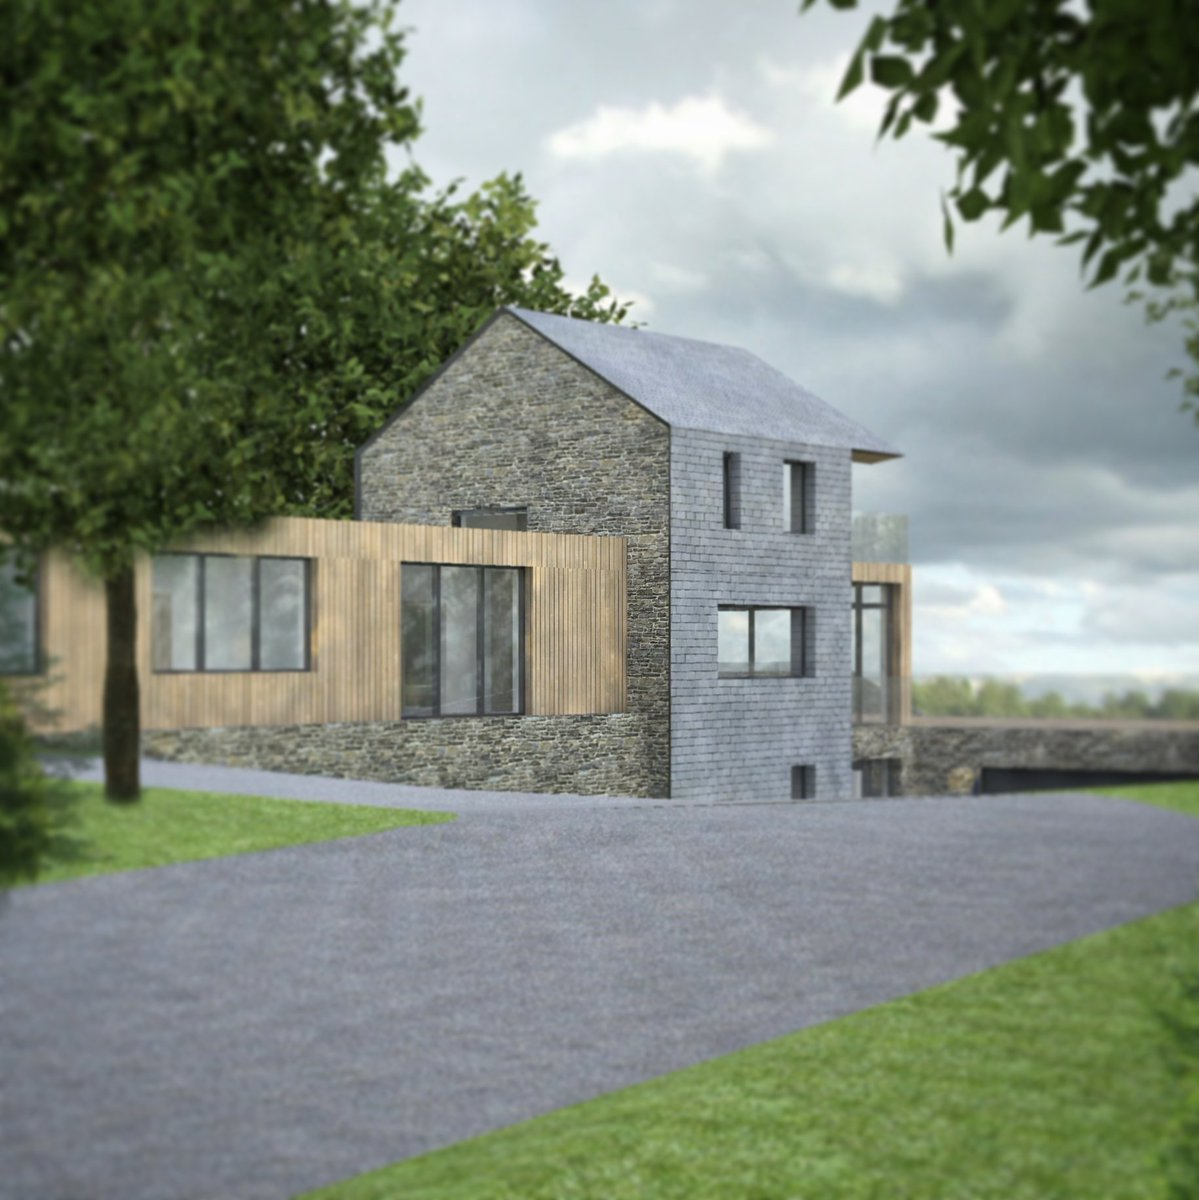 Planning secured for this one-off house in #Cornwall! #traditional materials teamed with #contemporary design. #architecture #slate #stone<br>http://pic.twitter.com/5U3YghYesB